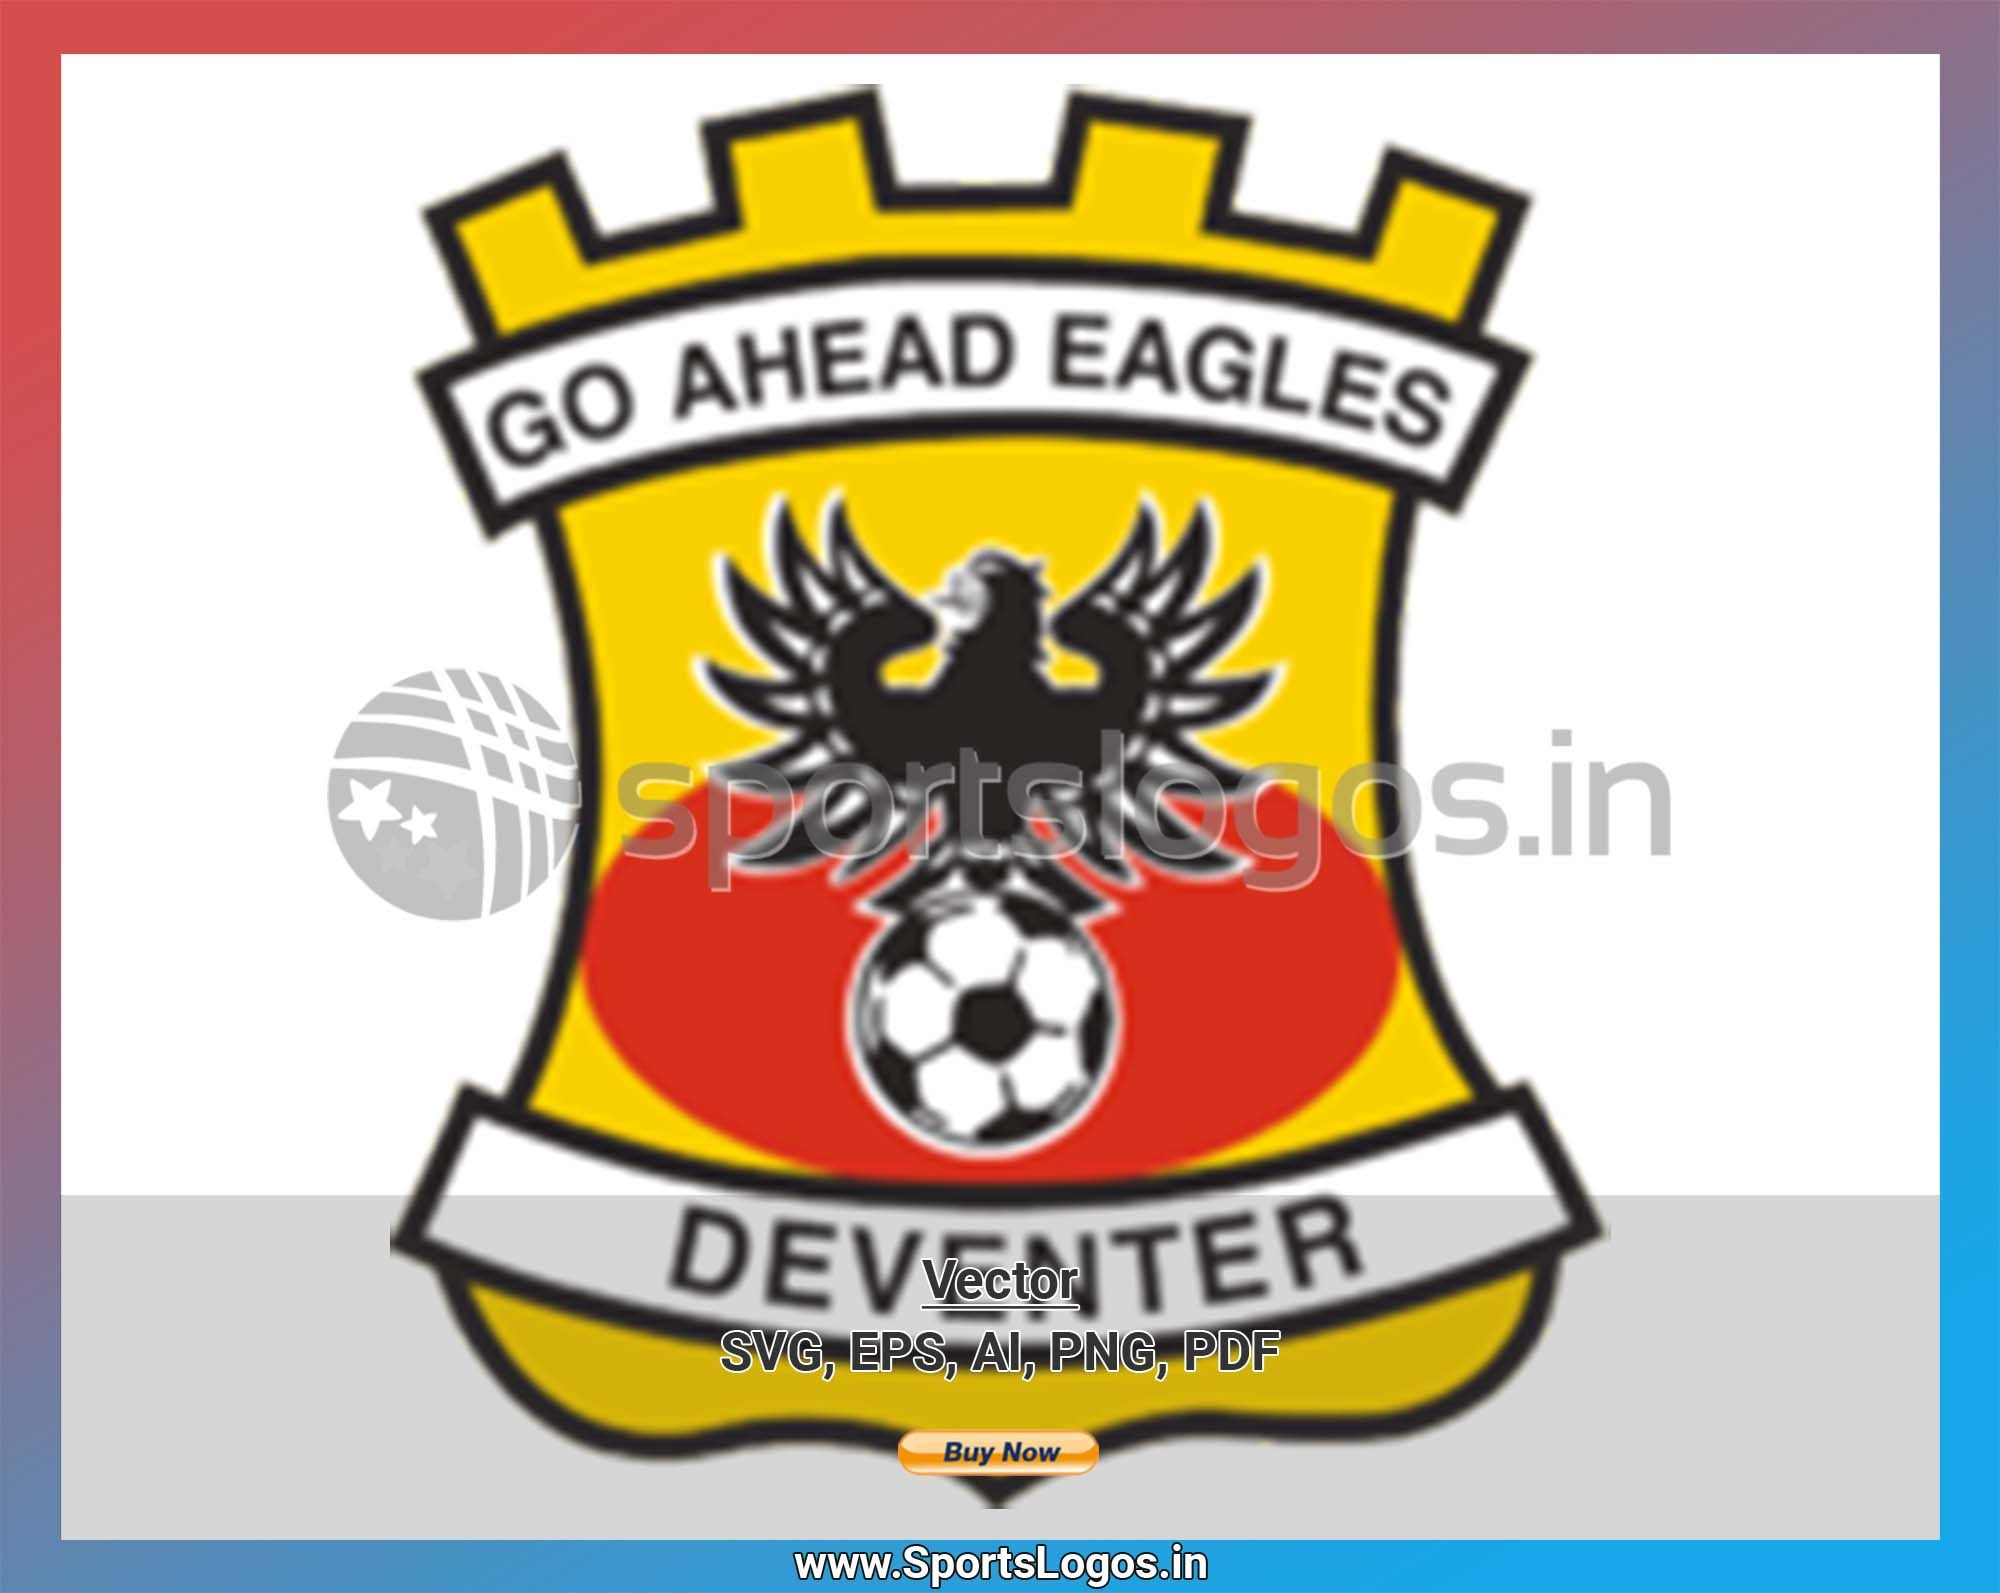 Go Ahead Eagles Soccer Sports Vector Svg Logo In 5 Formats Spln001621 Sports Logos Embroidery Vector For Nfl Nba Nhl Mlb Milb And More Eagles Vs Eagles Embroidery Logo